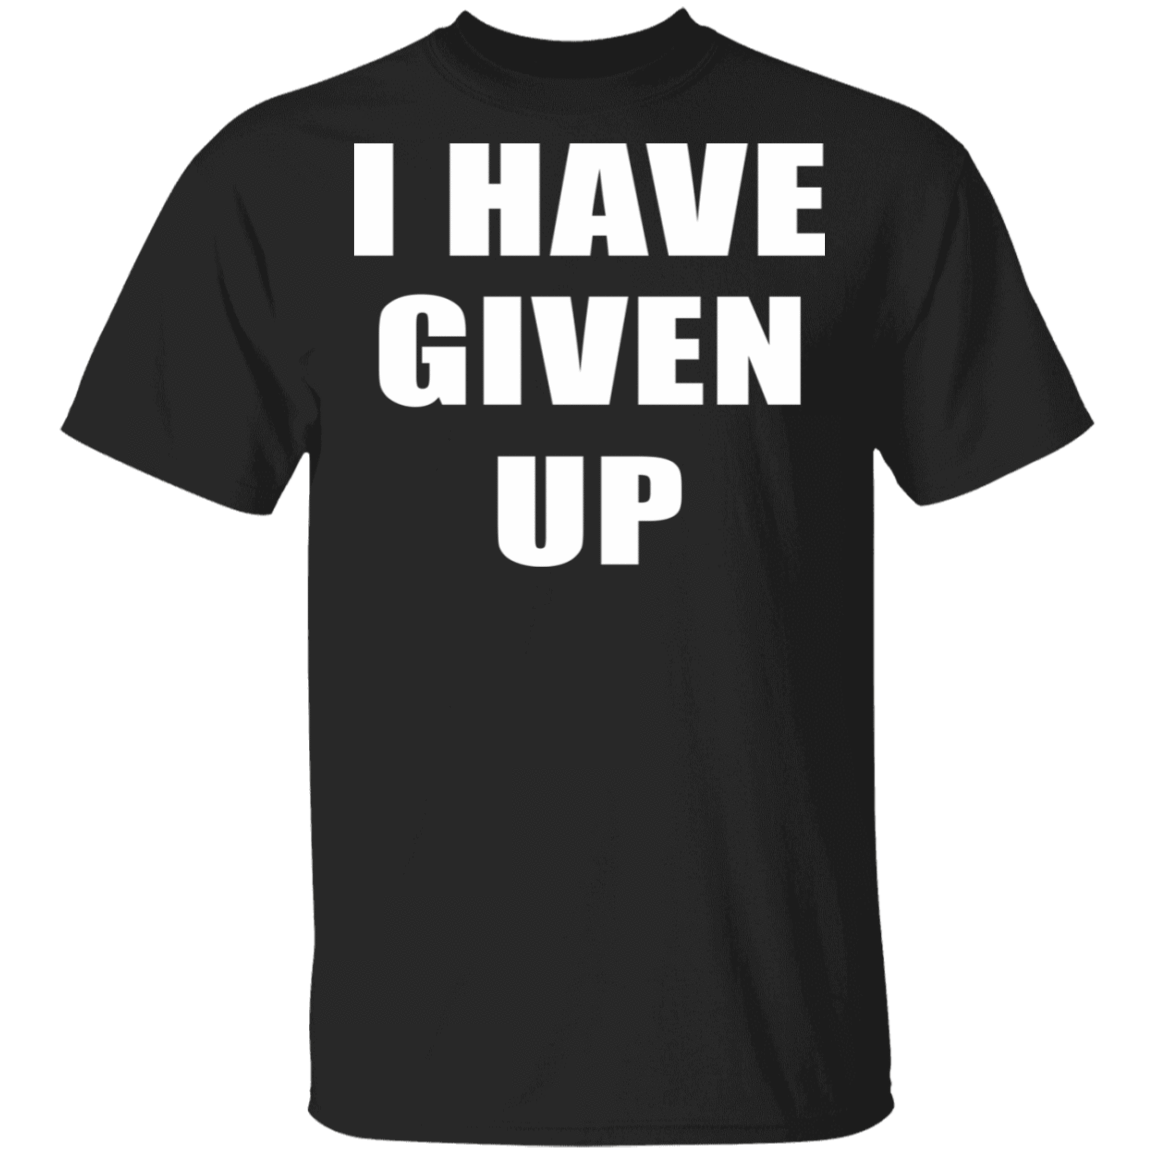 I Have Given Up T-Shirts, Hoodies 1049-9953-81804073-48144 - Tee Ript